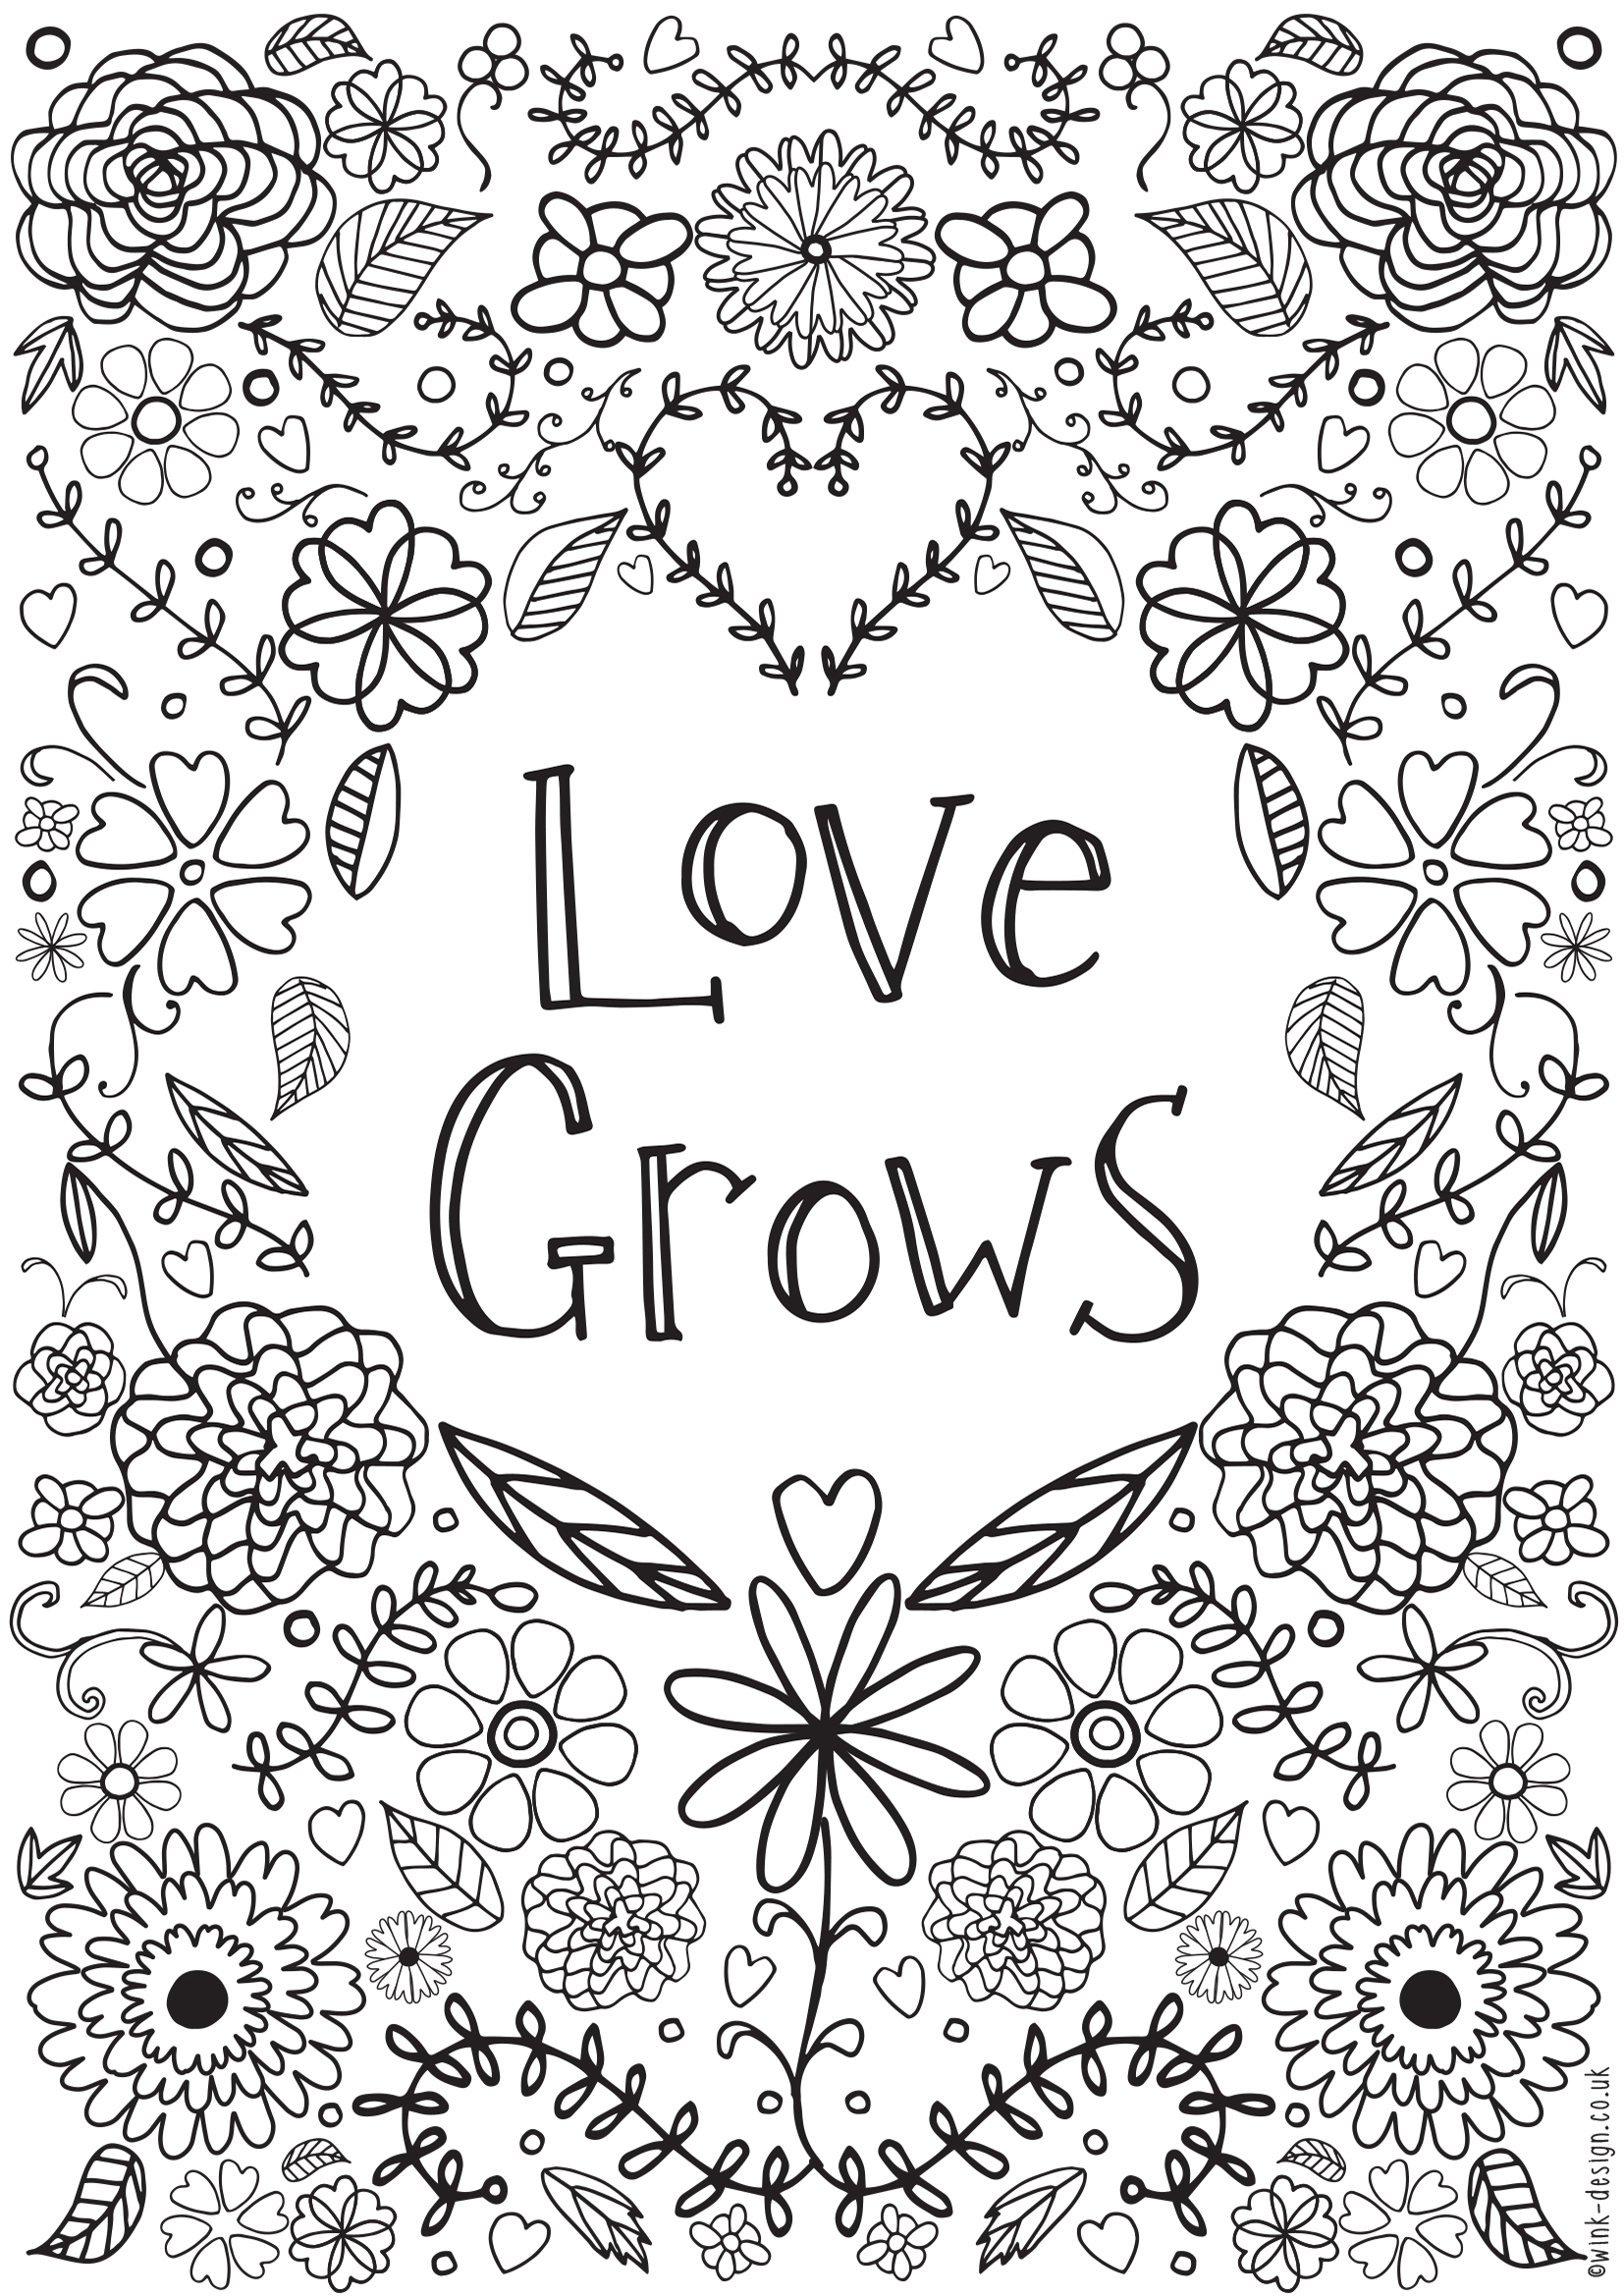 20 Printable Adult Coloring Pages Quotes Selection Free Coloring